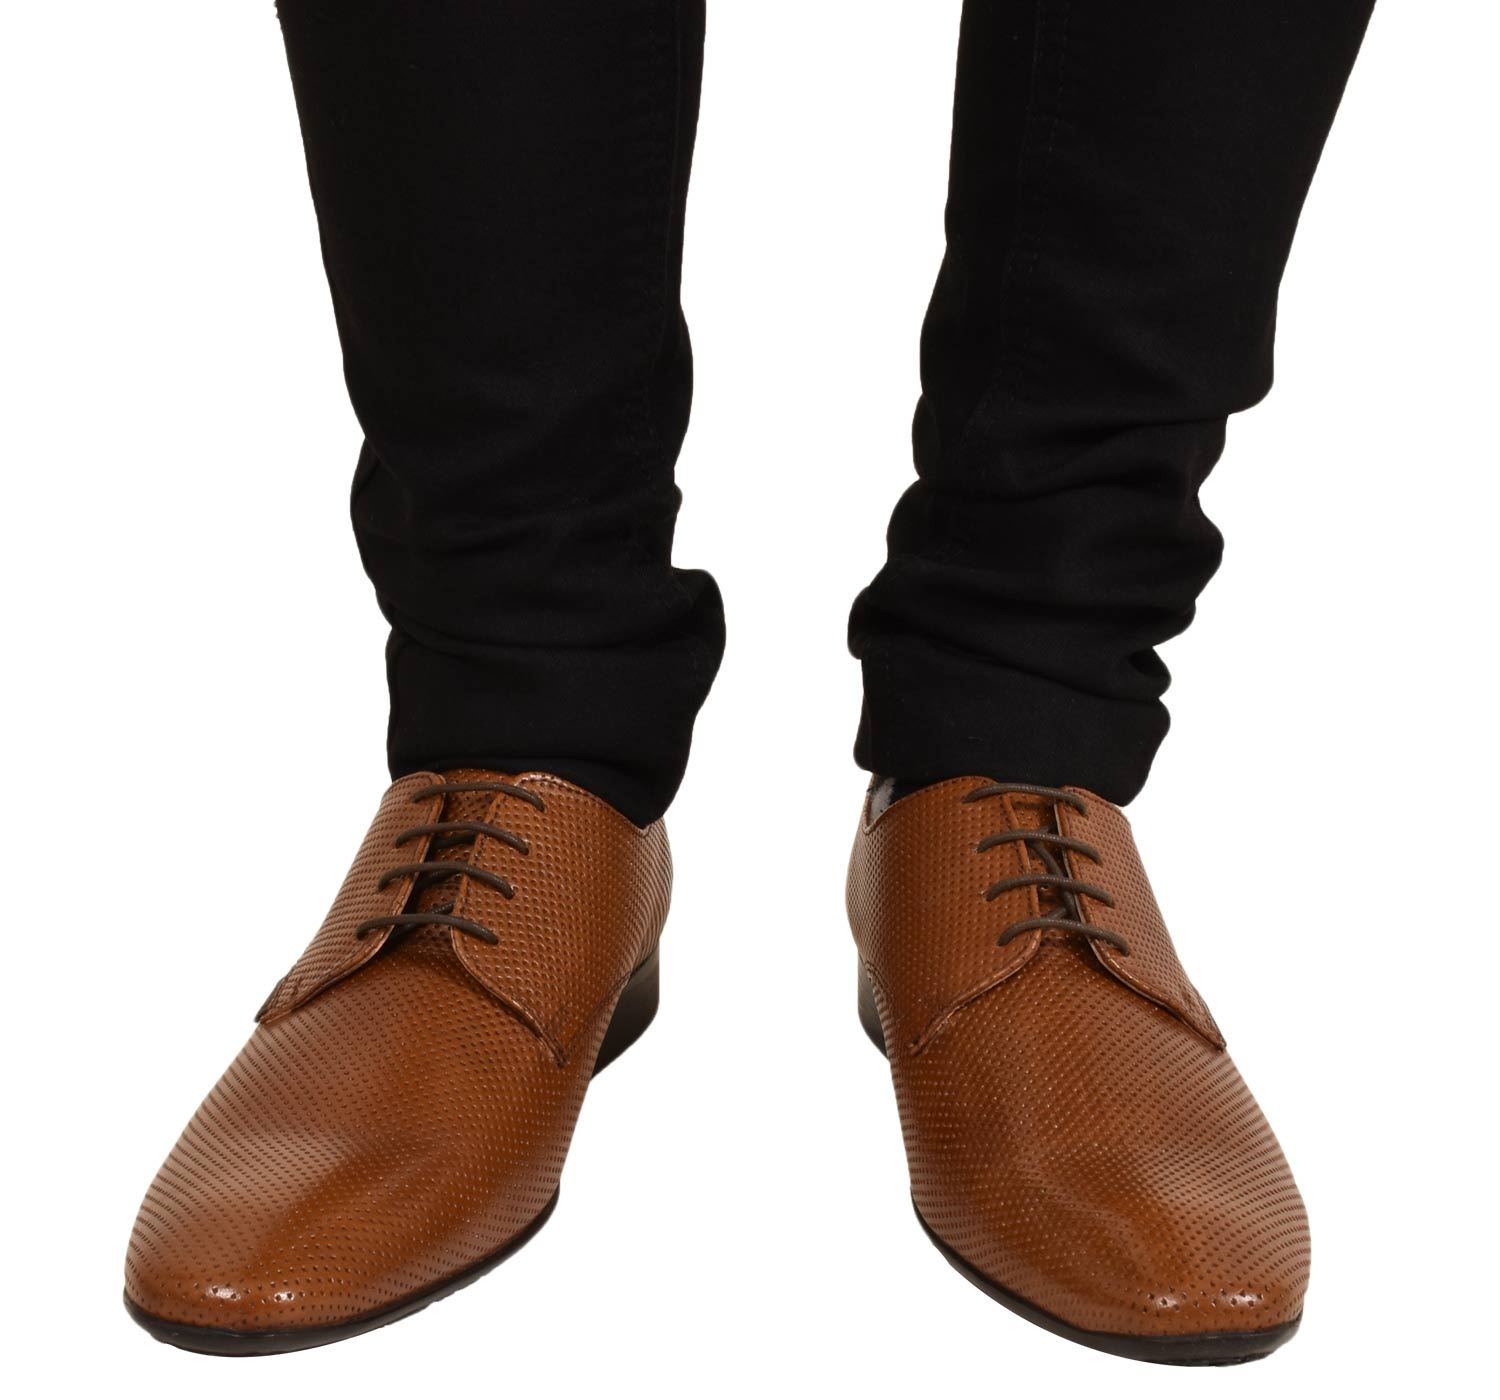 Mens-UK-Style-Leather-Lining-Formal-Office-Wedding-Smart-Work-Brogue-Shoes thumbnail 15